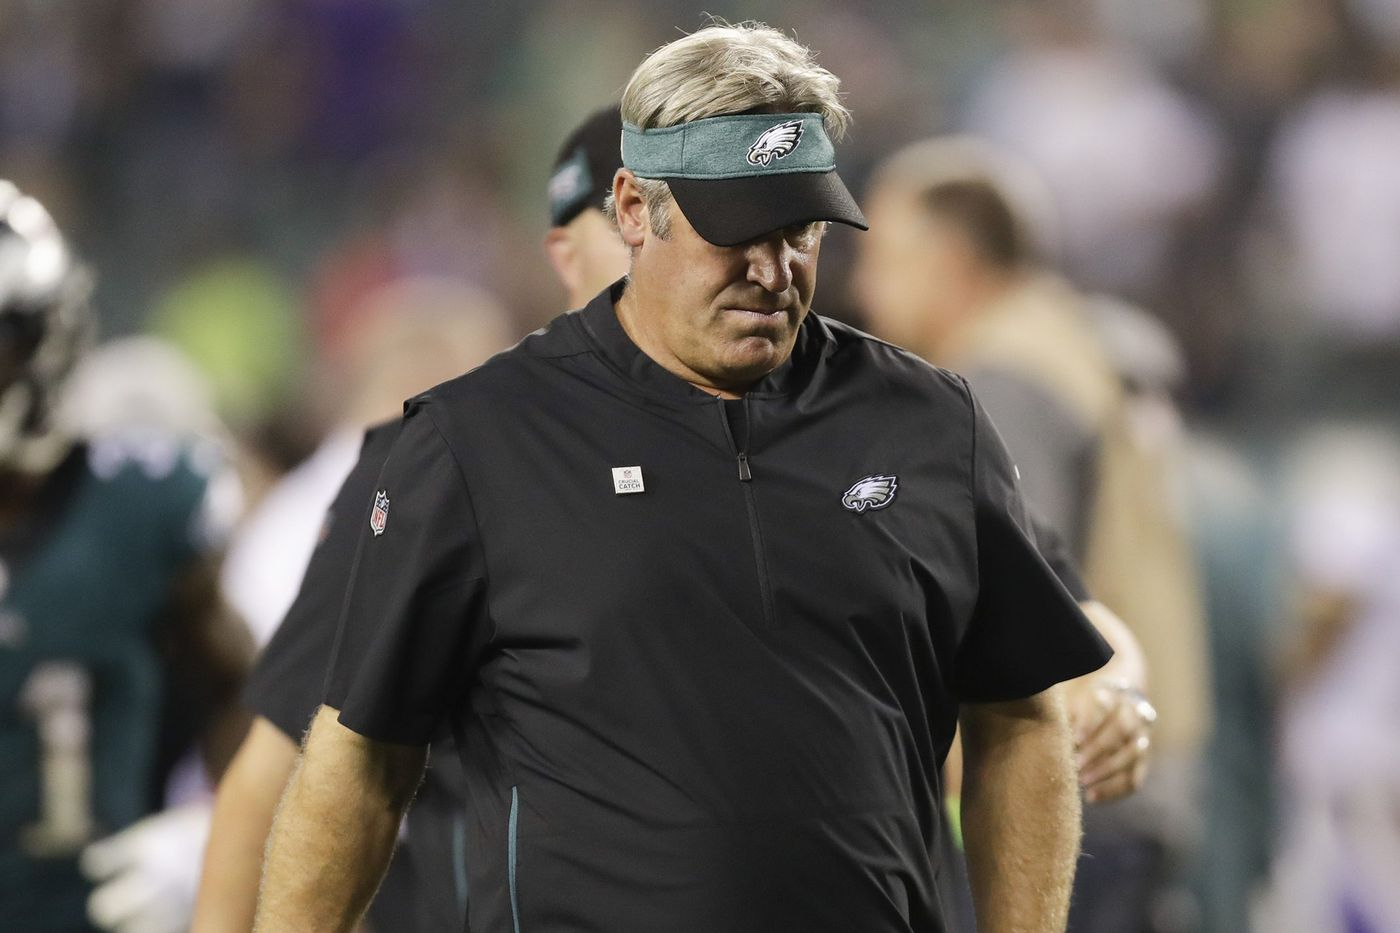 Doug Pederson accepts and deserves blame for Eagles loss | Bob Brookover